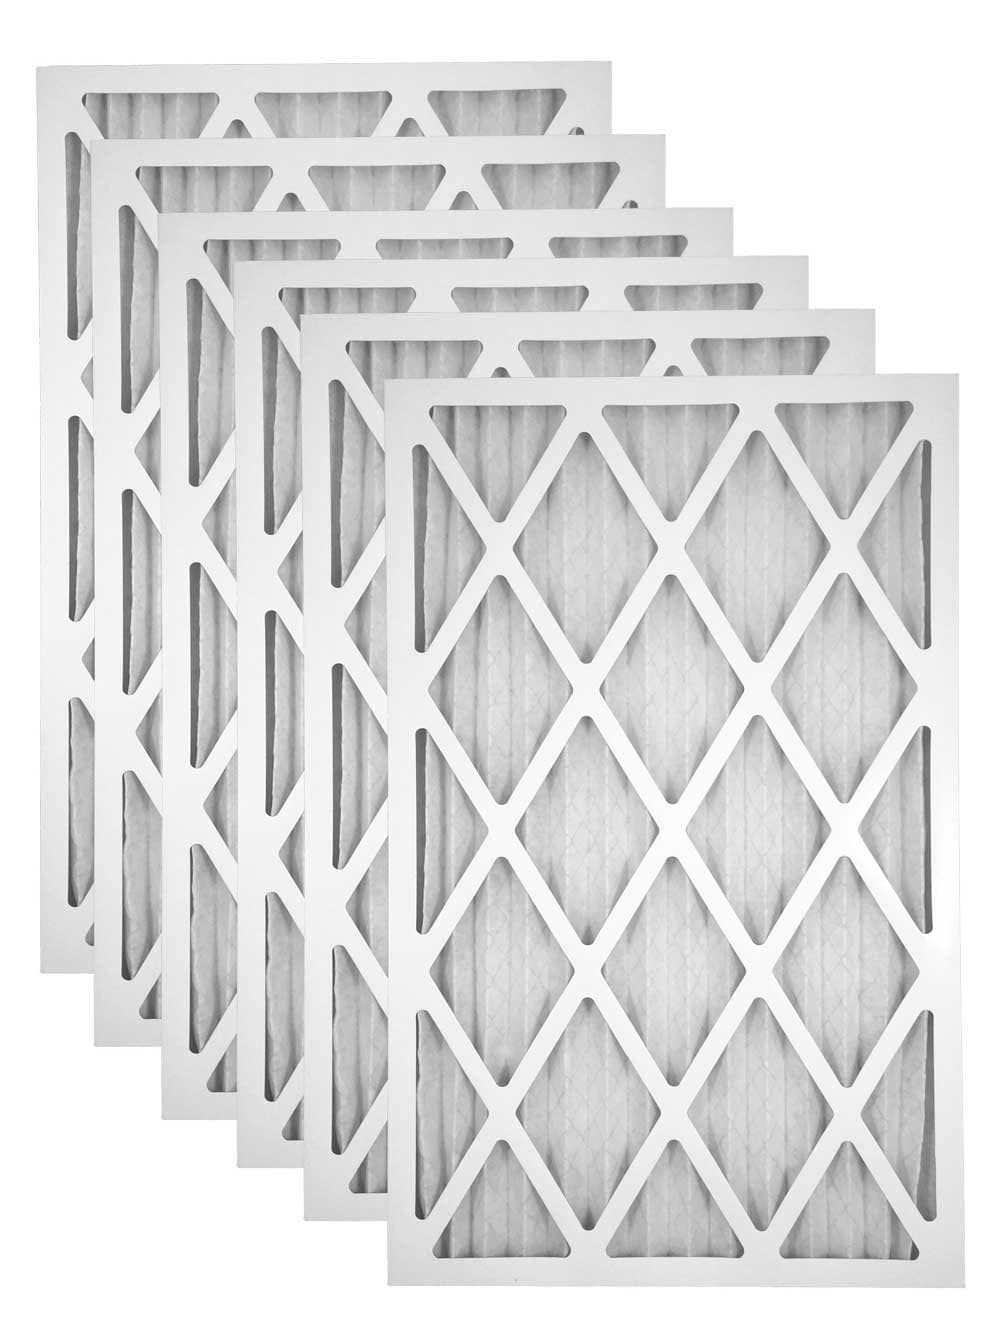 Atomic 12x20x2 MERV 13 Pleated Geothermal Furnace Filter - Case of 6